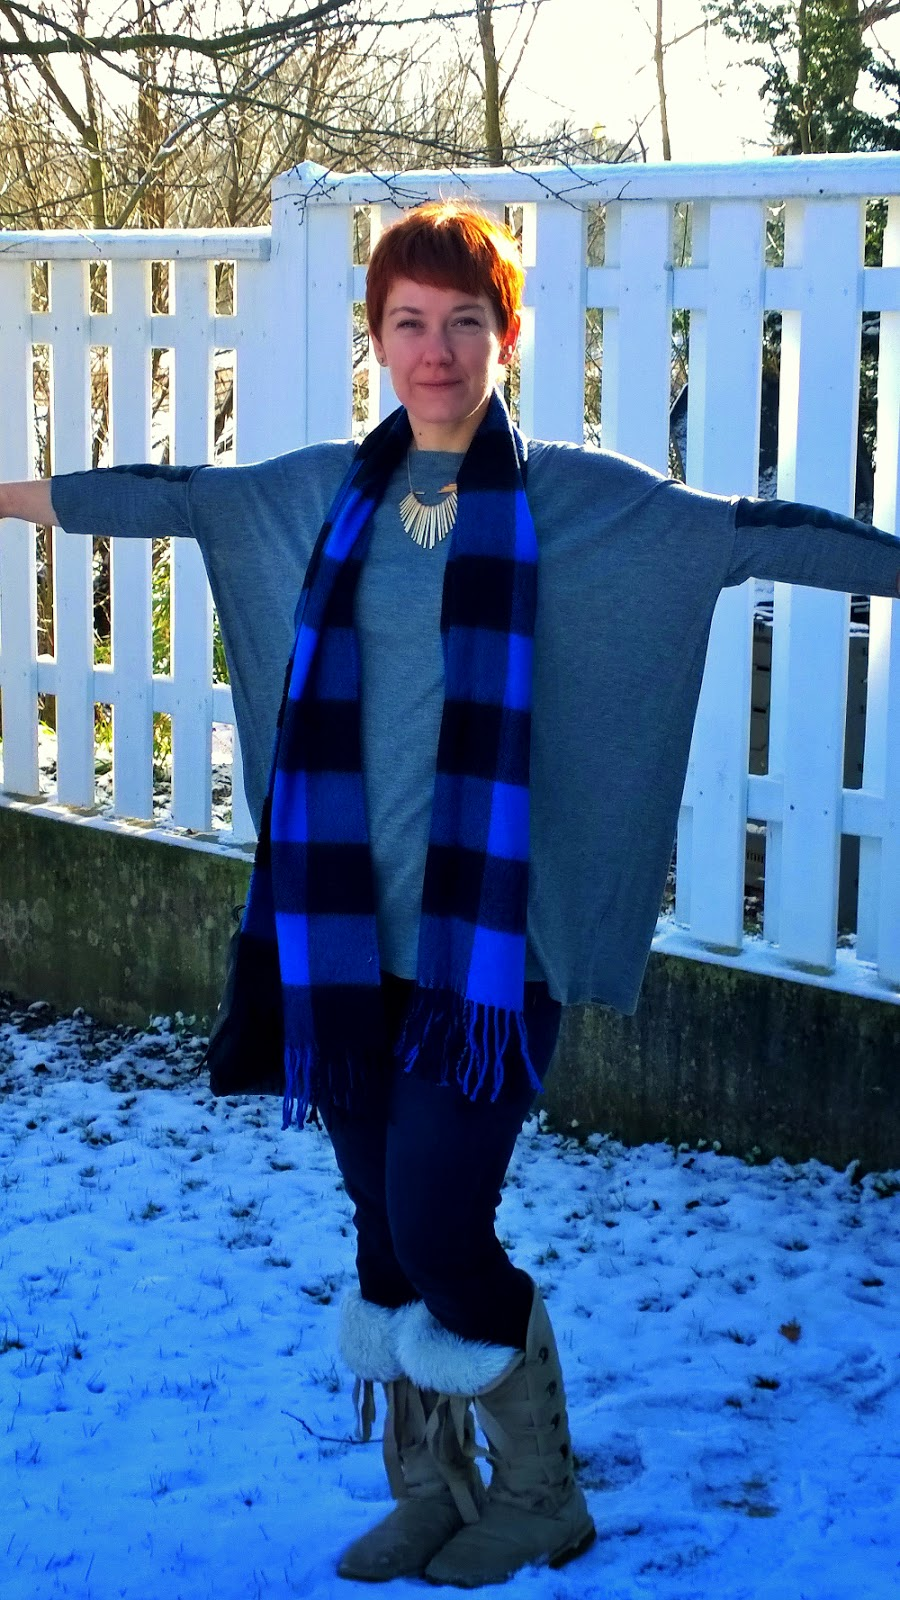 Buffalo plaid scarf, fake fur boots, skinnie jeans, batwing sleeves, fashion and style blog, red hair